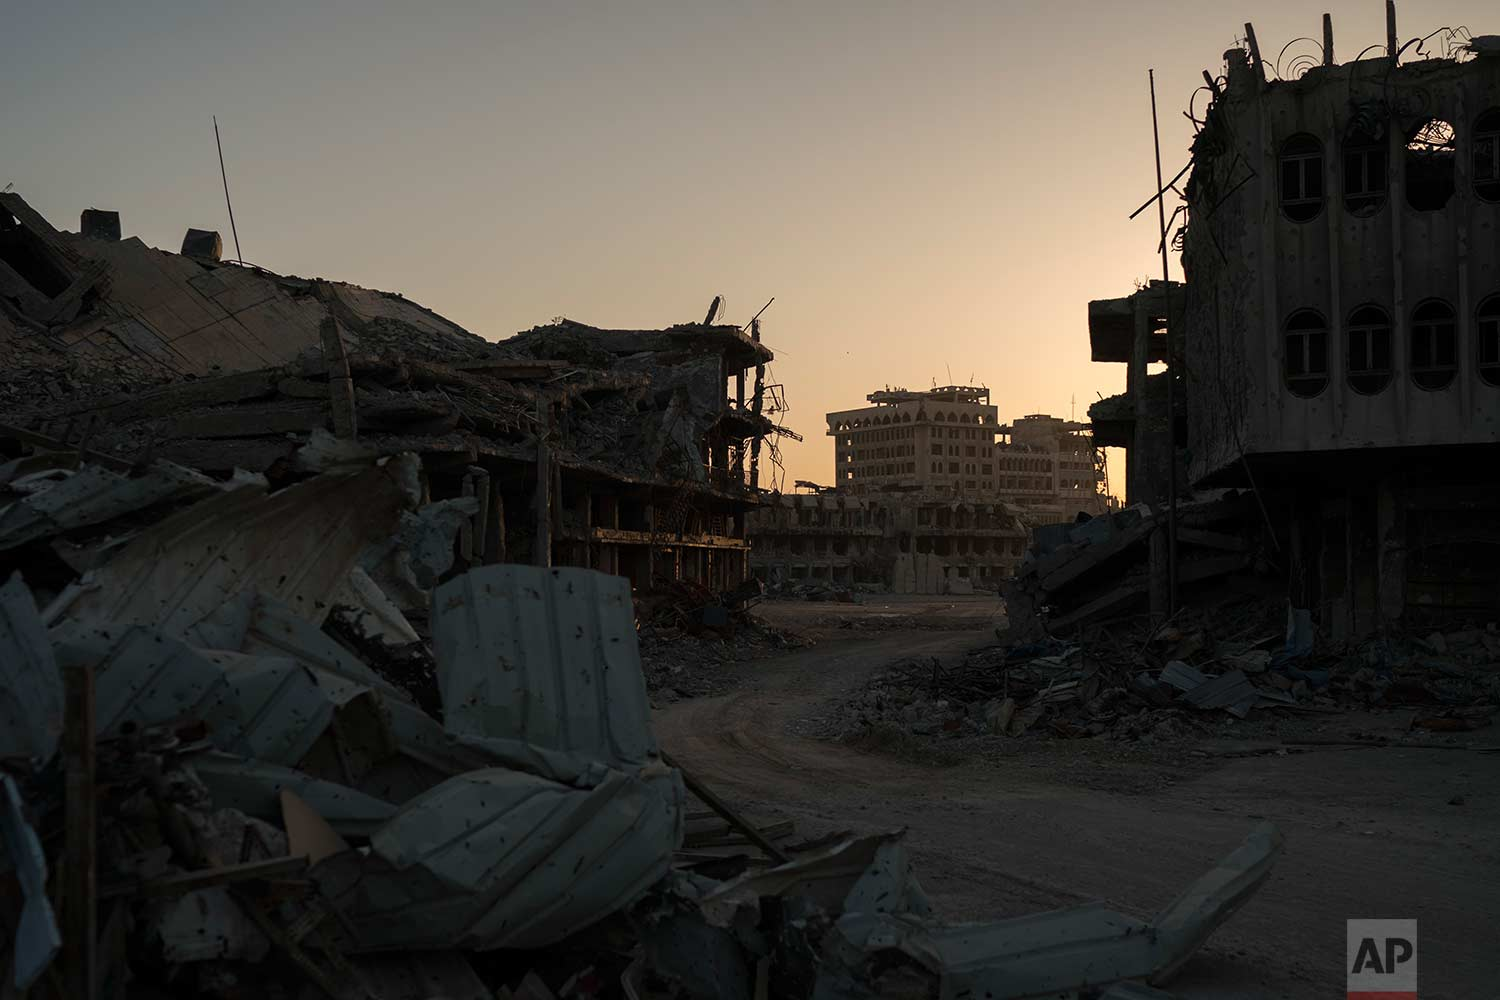 In this Nov. 16, 2017 photo, the sun sets behind damaged buildings in the Old City of Mosul, Iraq. (AP Photo/Felipe Dana)